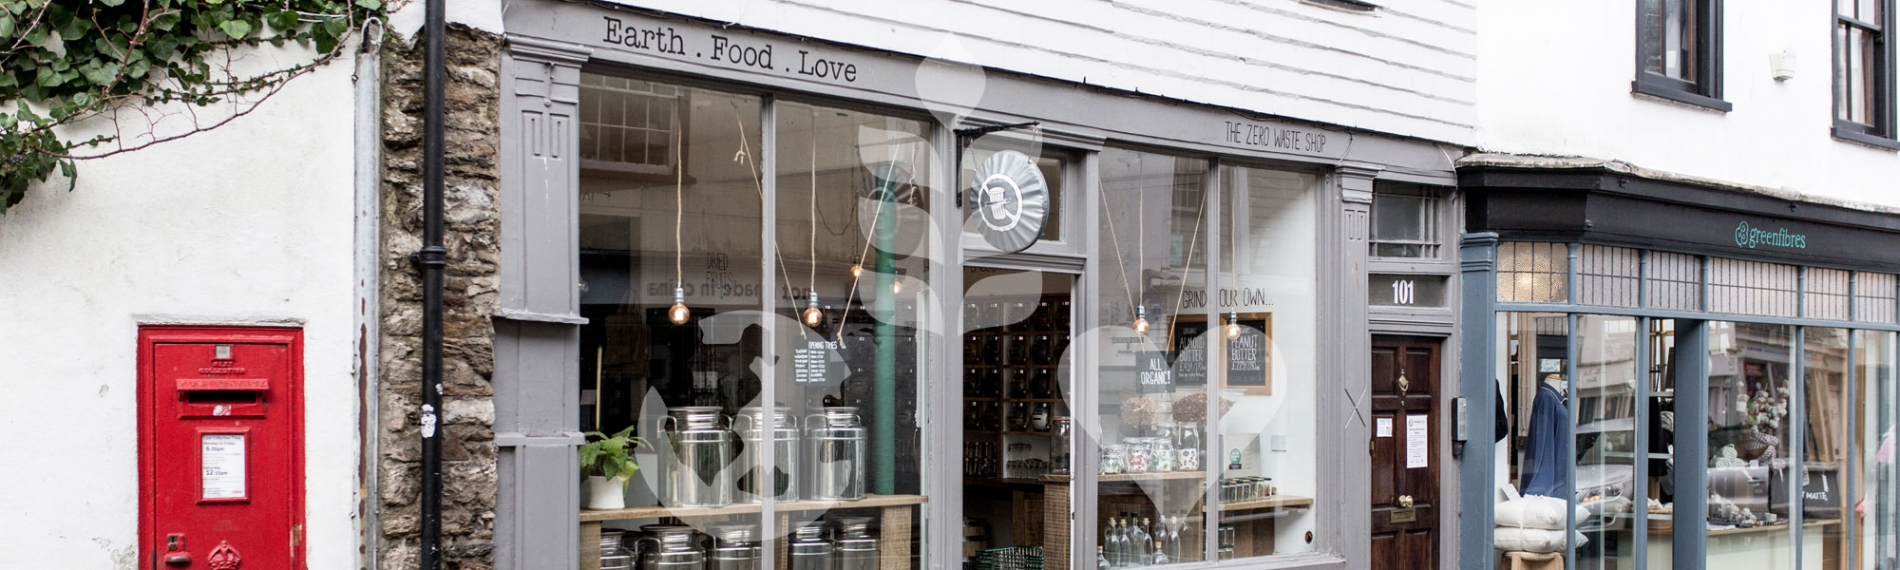 The Zero Waste Shop, Totnes, Devon - organic, plant-based, bulk-buy